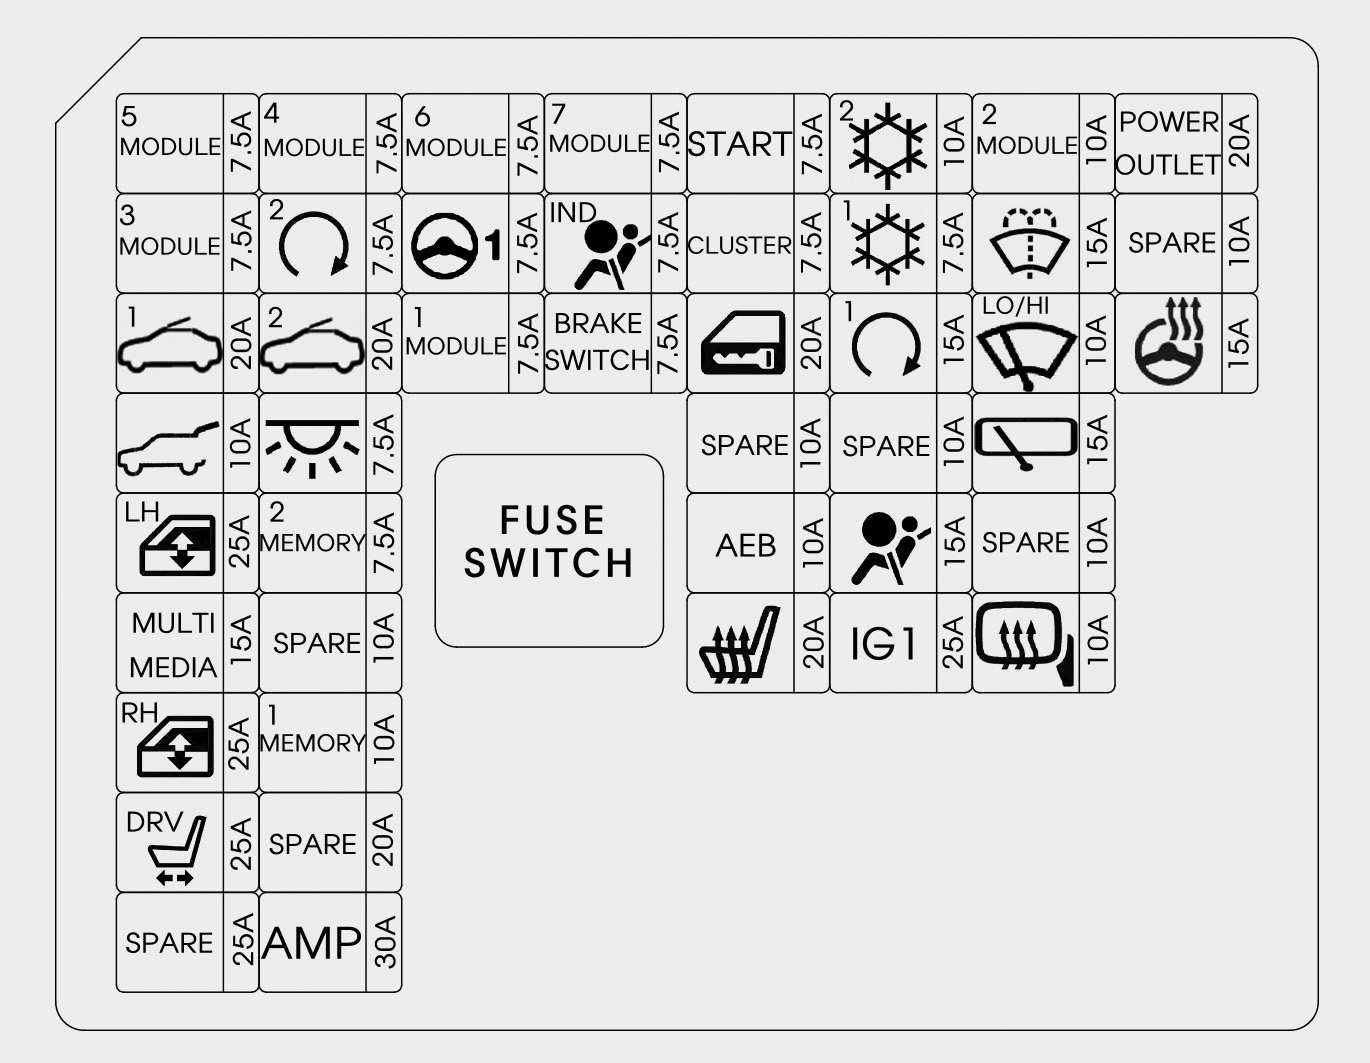 Hyundai I10 Fuse Box Diagram Wiring Diagrams 2008 Entourage Accent Elantra Location 2012